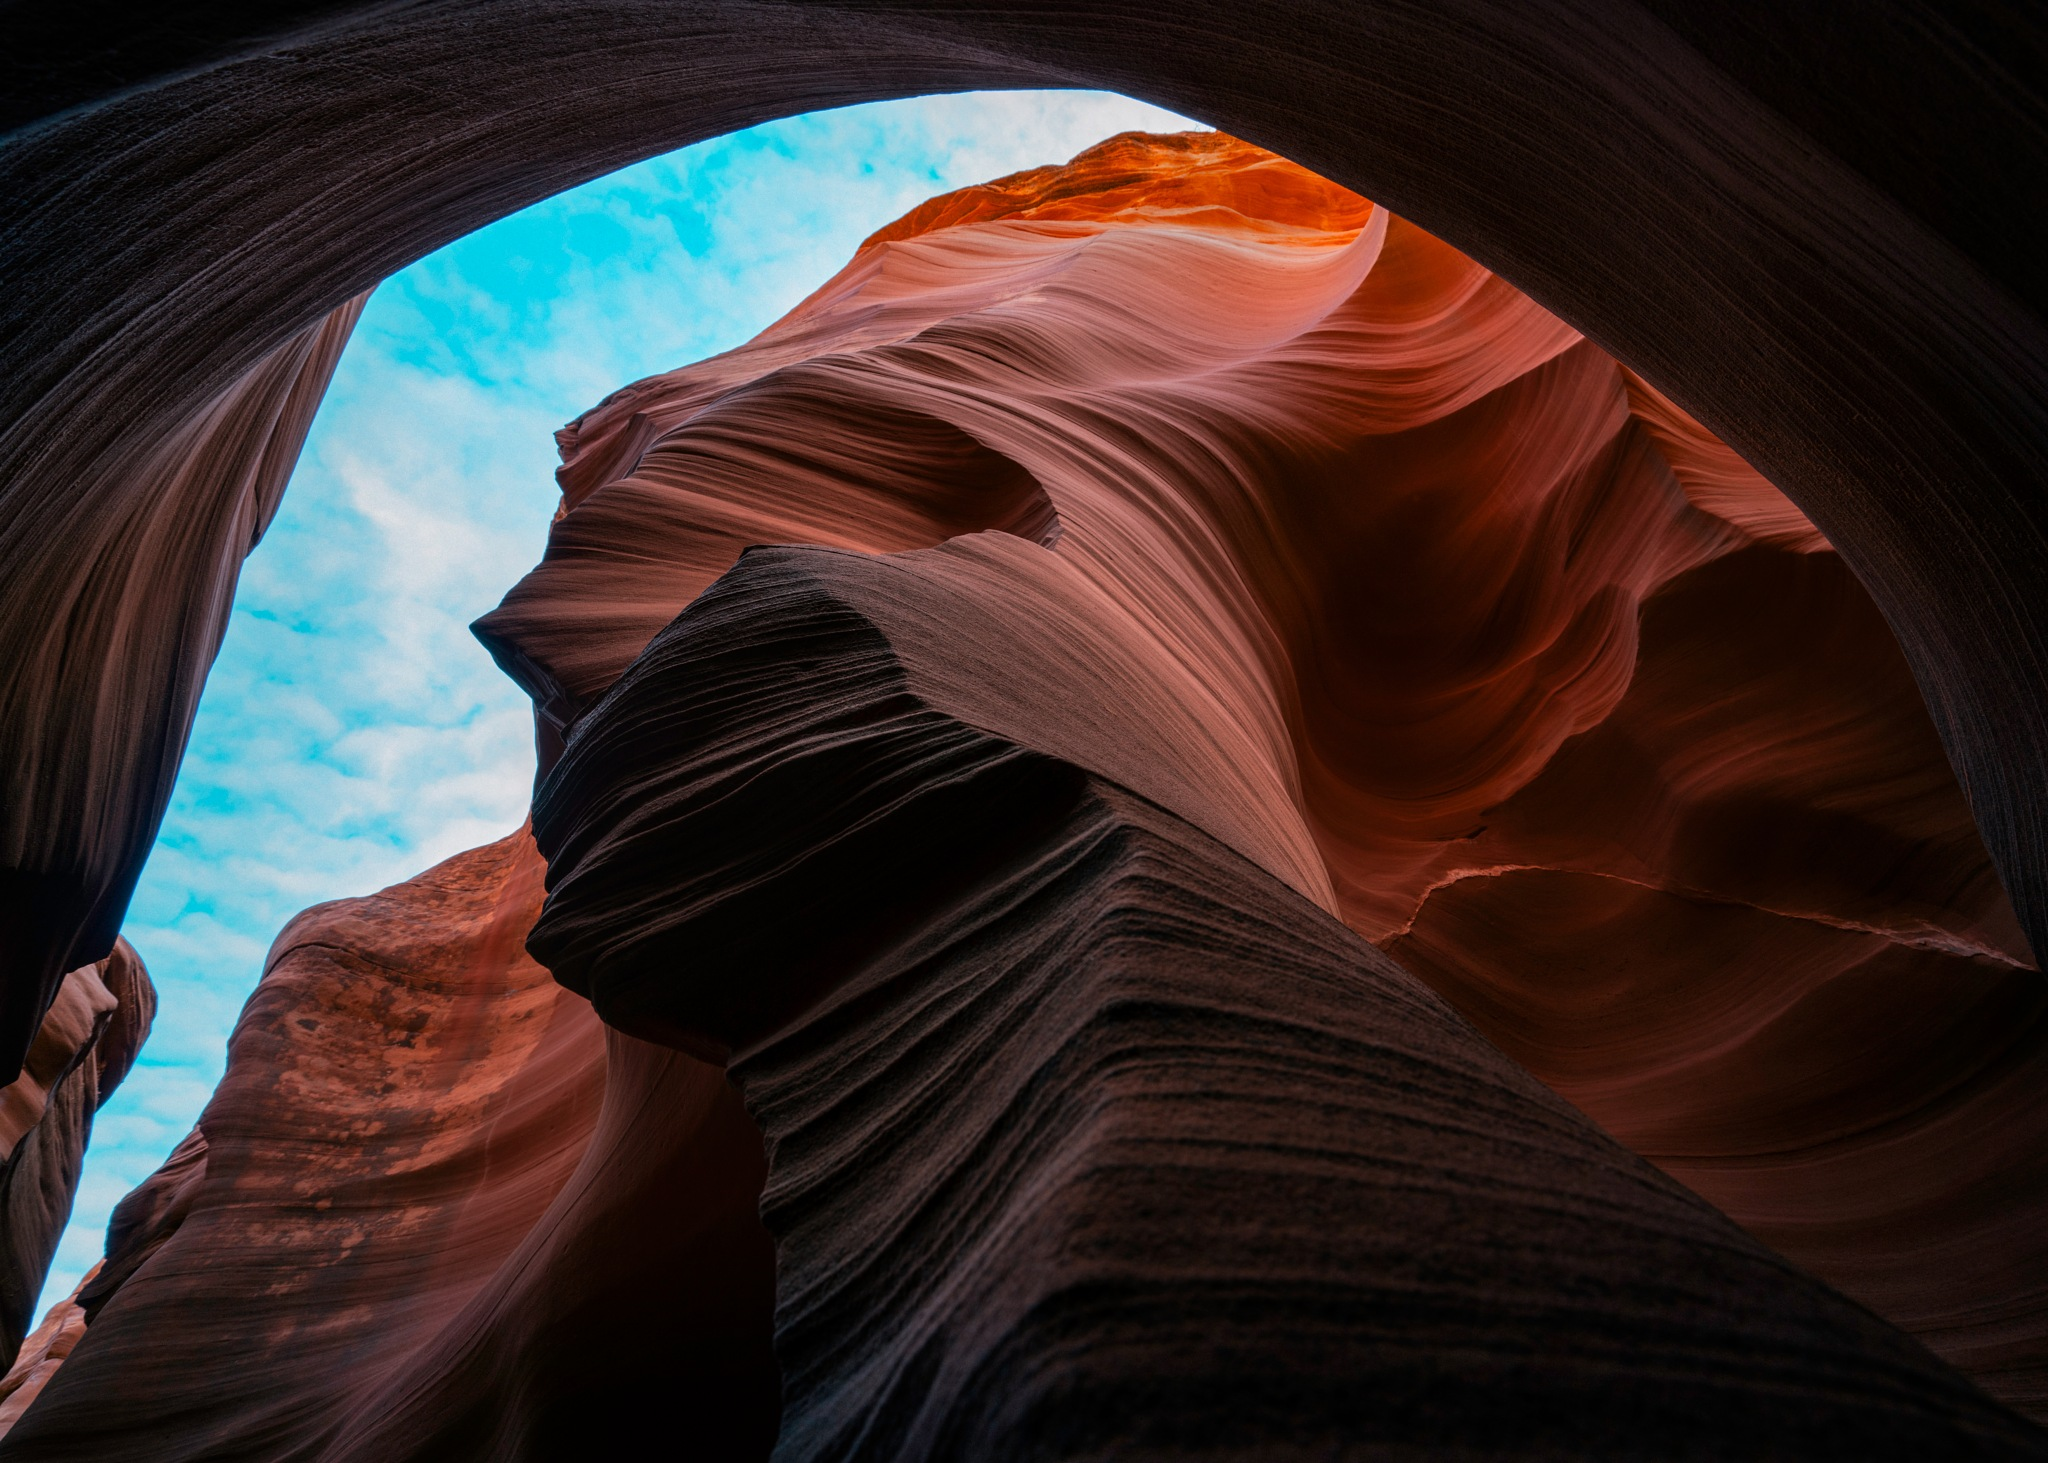 Stone Head in Arizona by Tim Martin